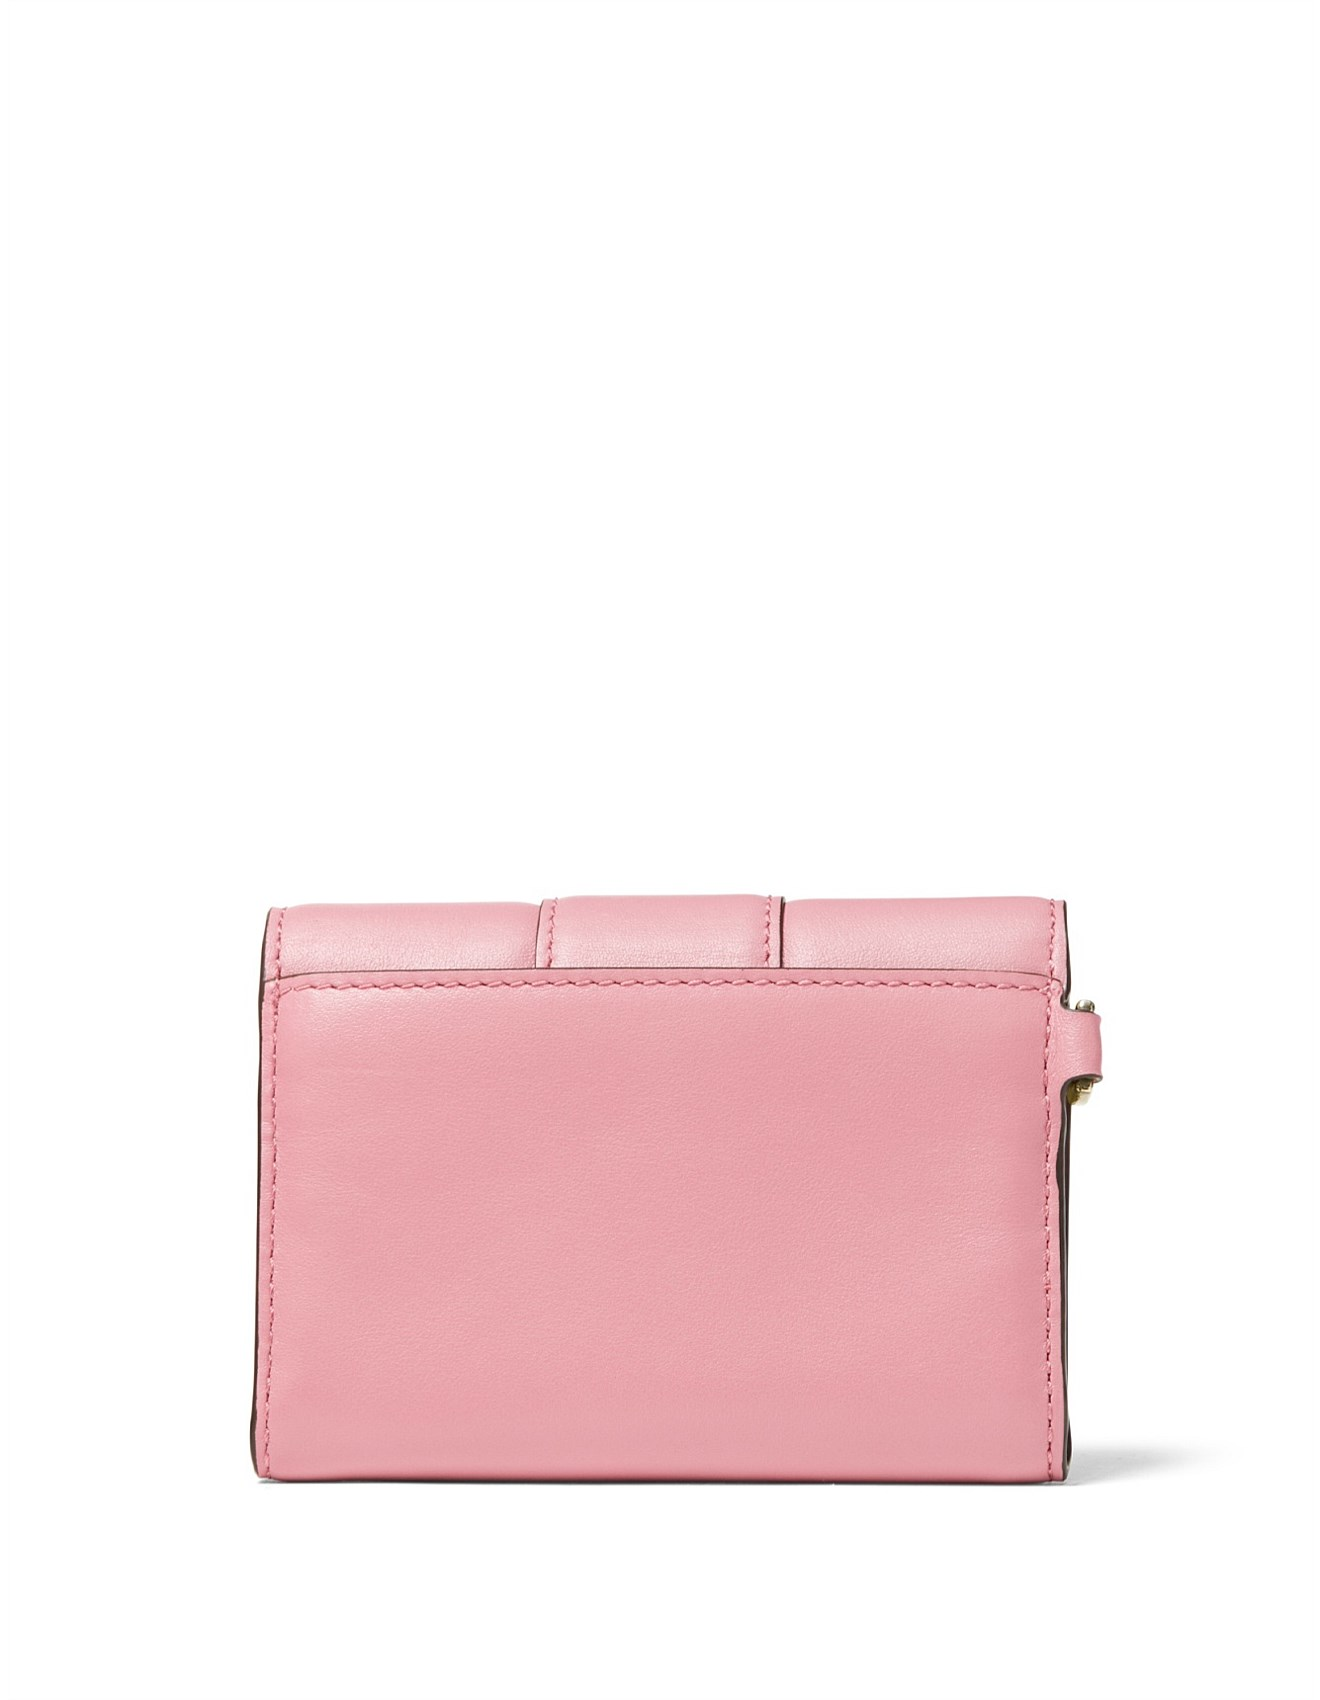 dfeb4306096c Wallets - Whitney Small Leather Convertible Carryall